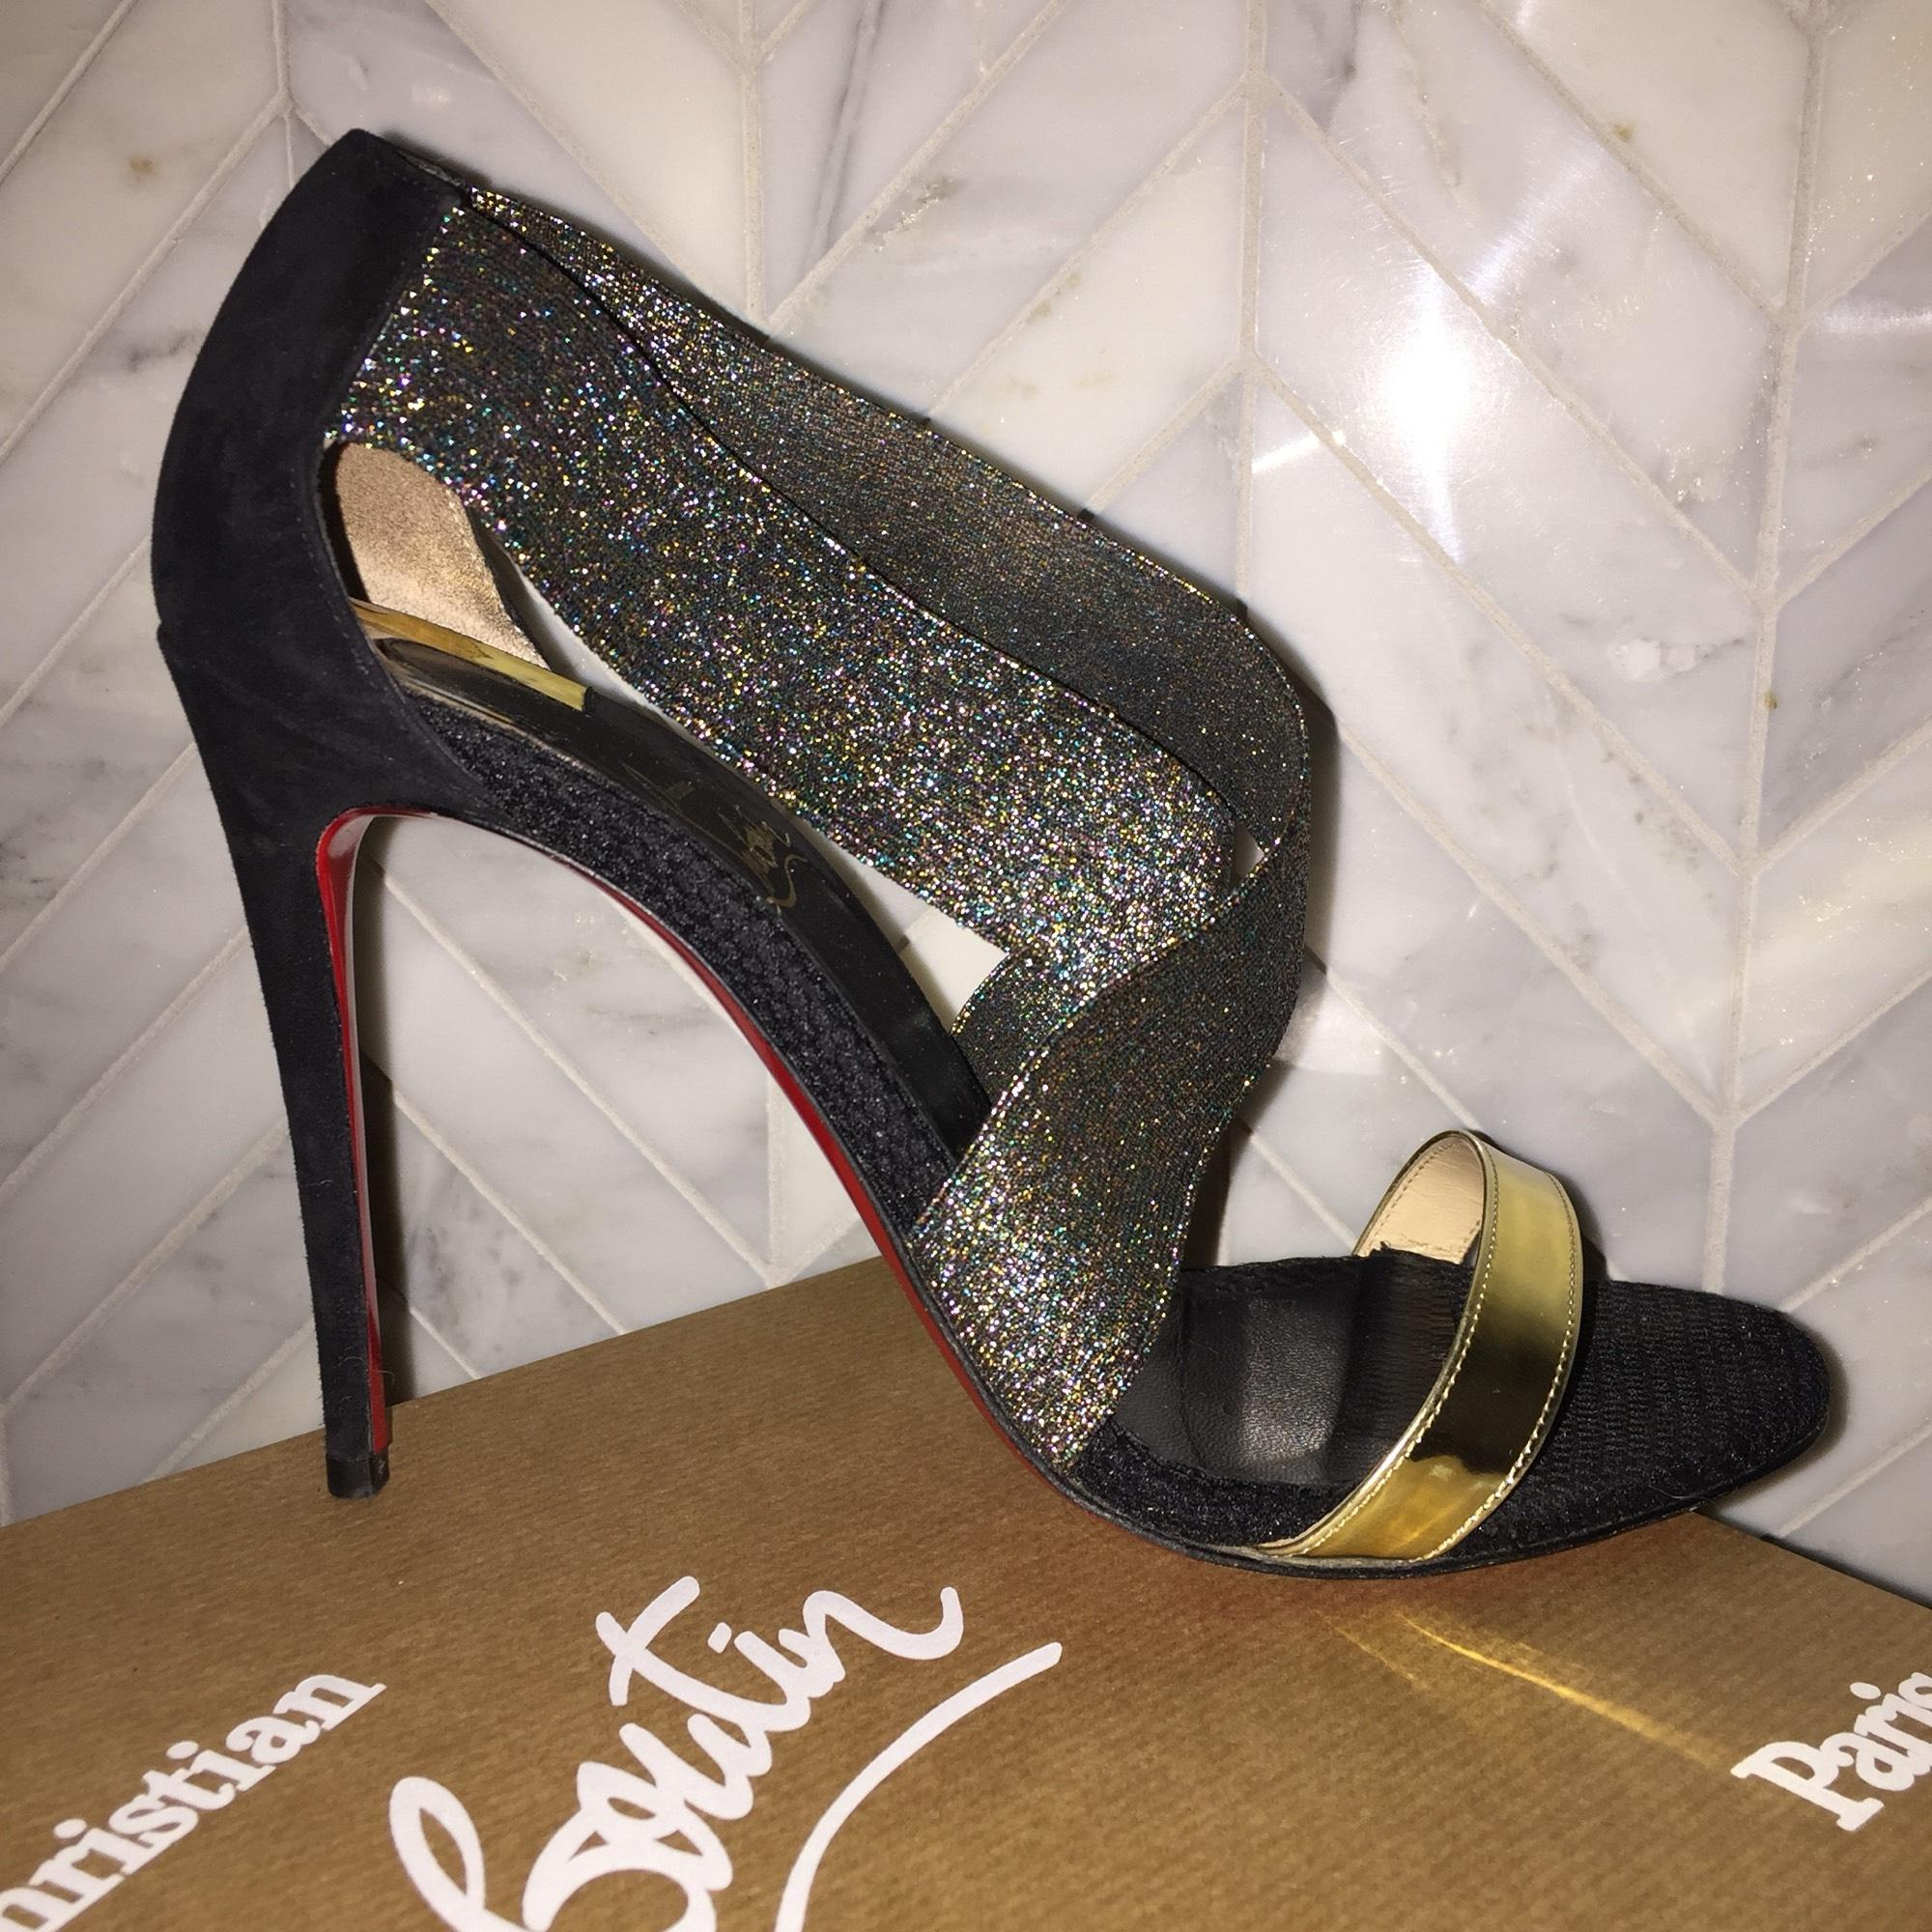 d8d0b94a4d66 ... Christian Louboutin Black Elastagram 100 100 100 Specchio Veau  Multicolor Criss Cross Bling Heels Gold ...